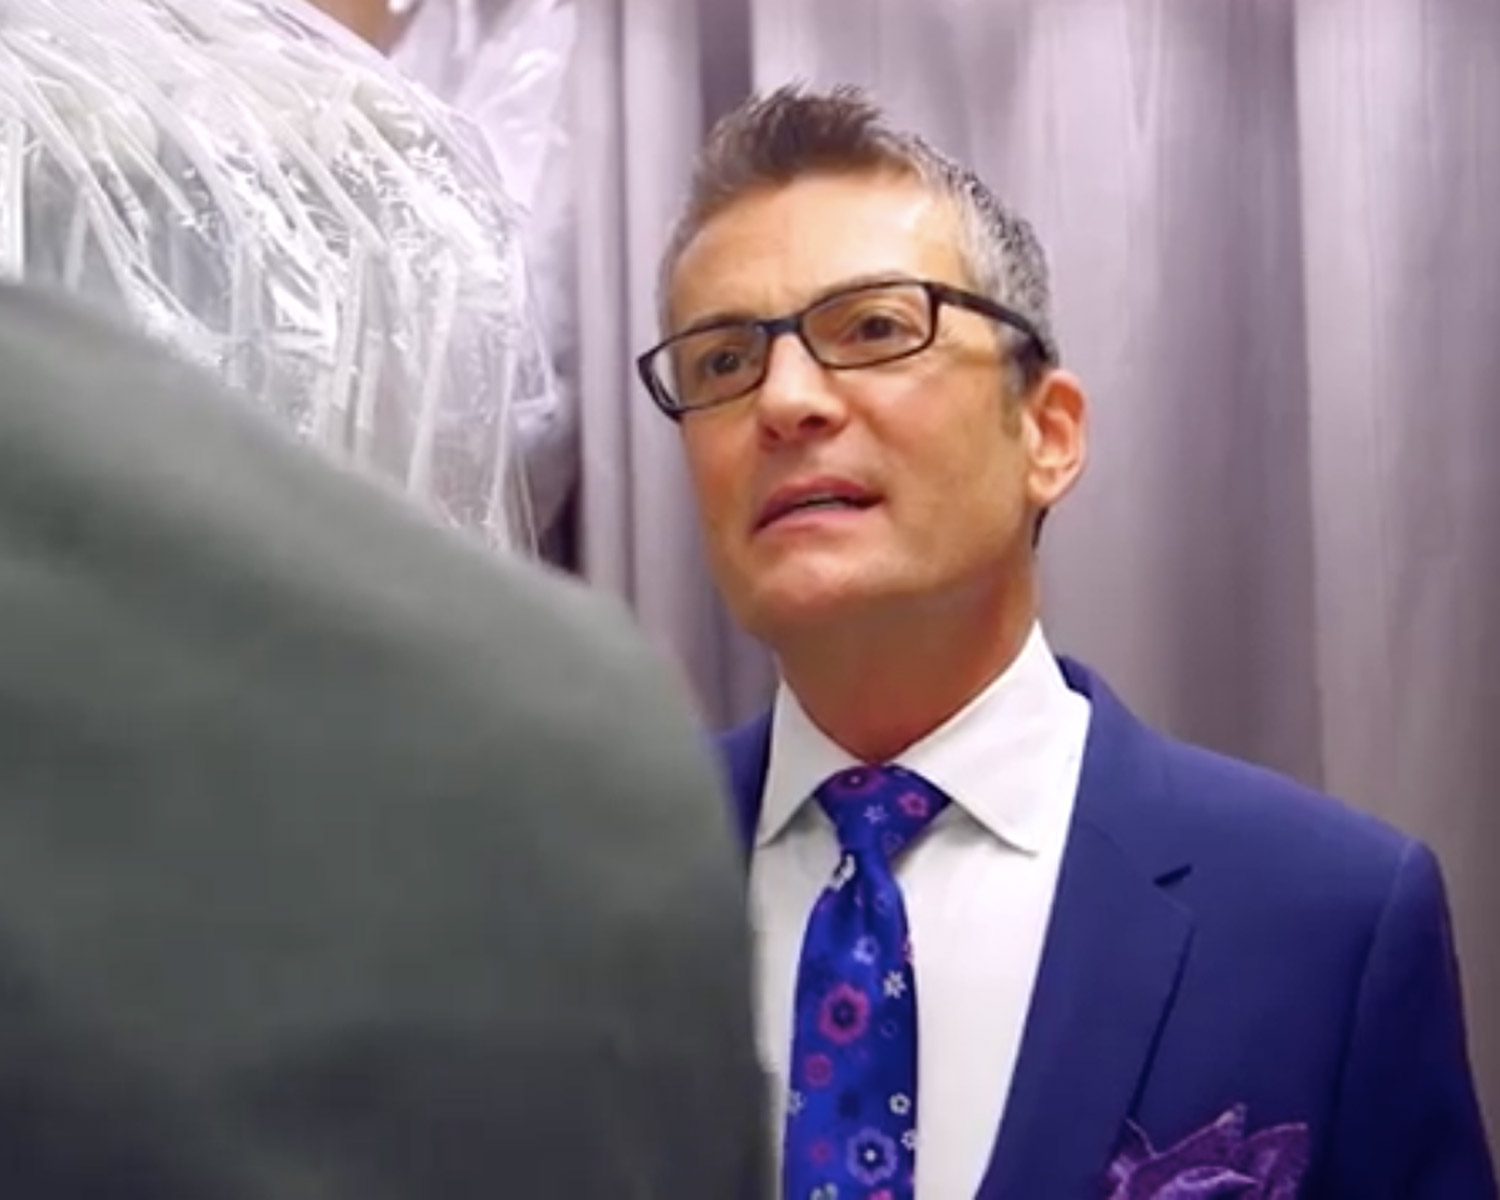 Randy Say Yes To The Dress Drag Queen